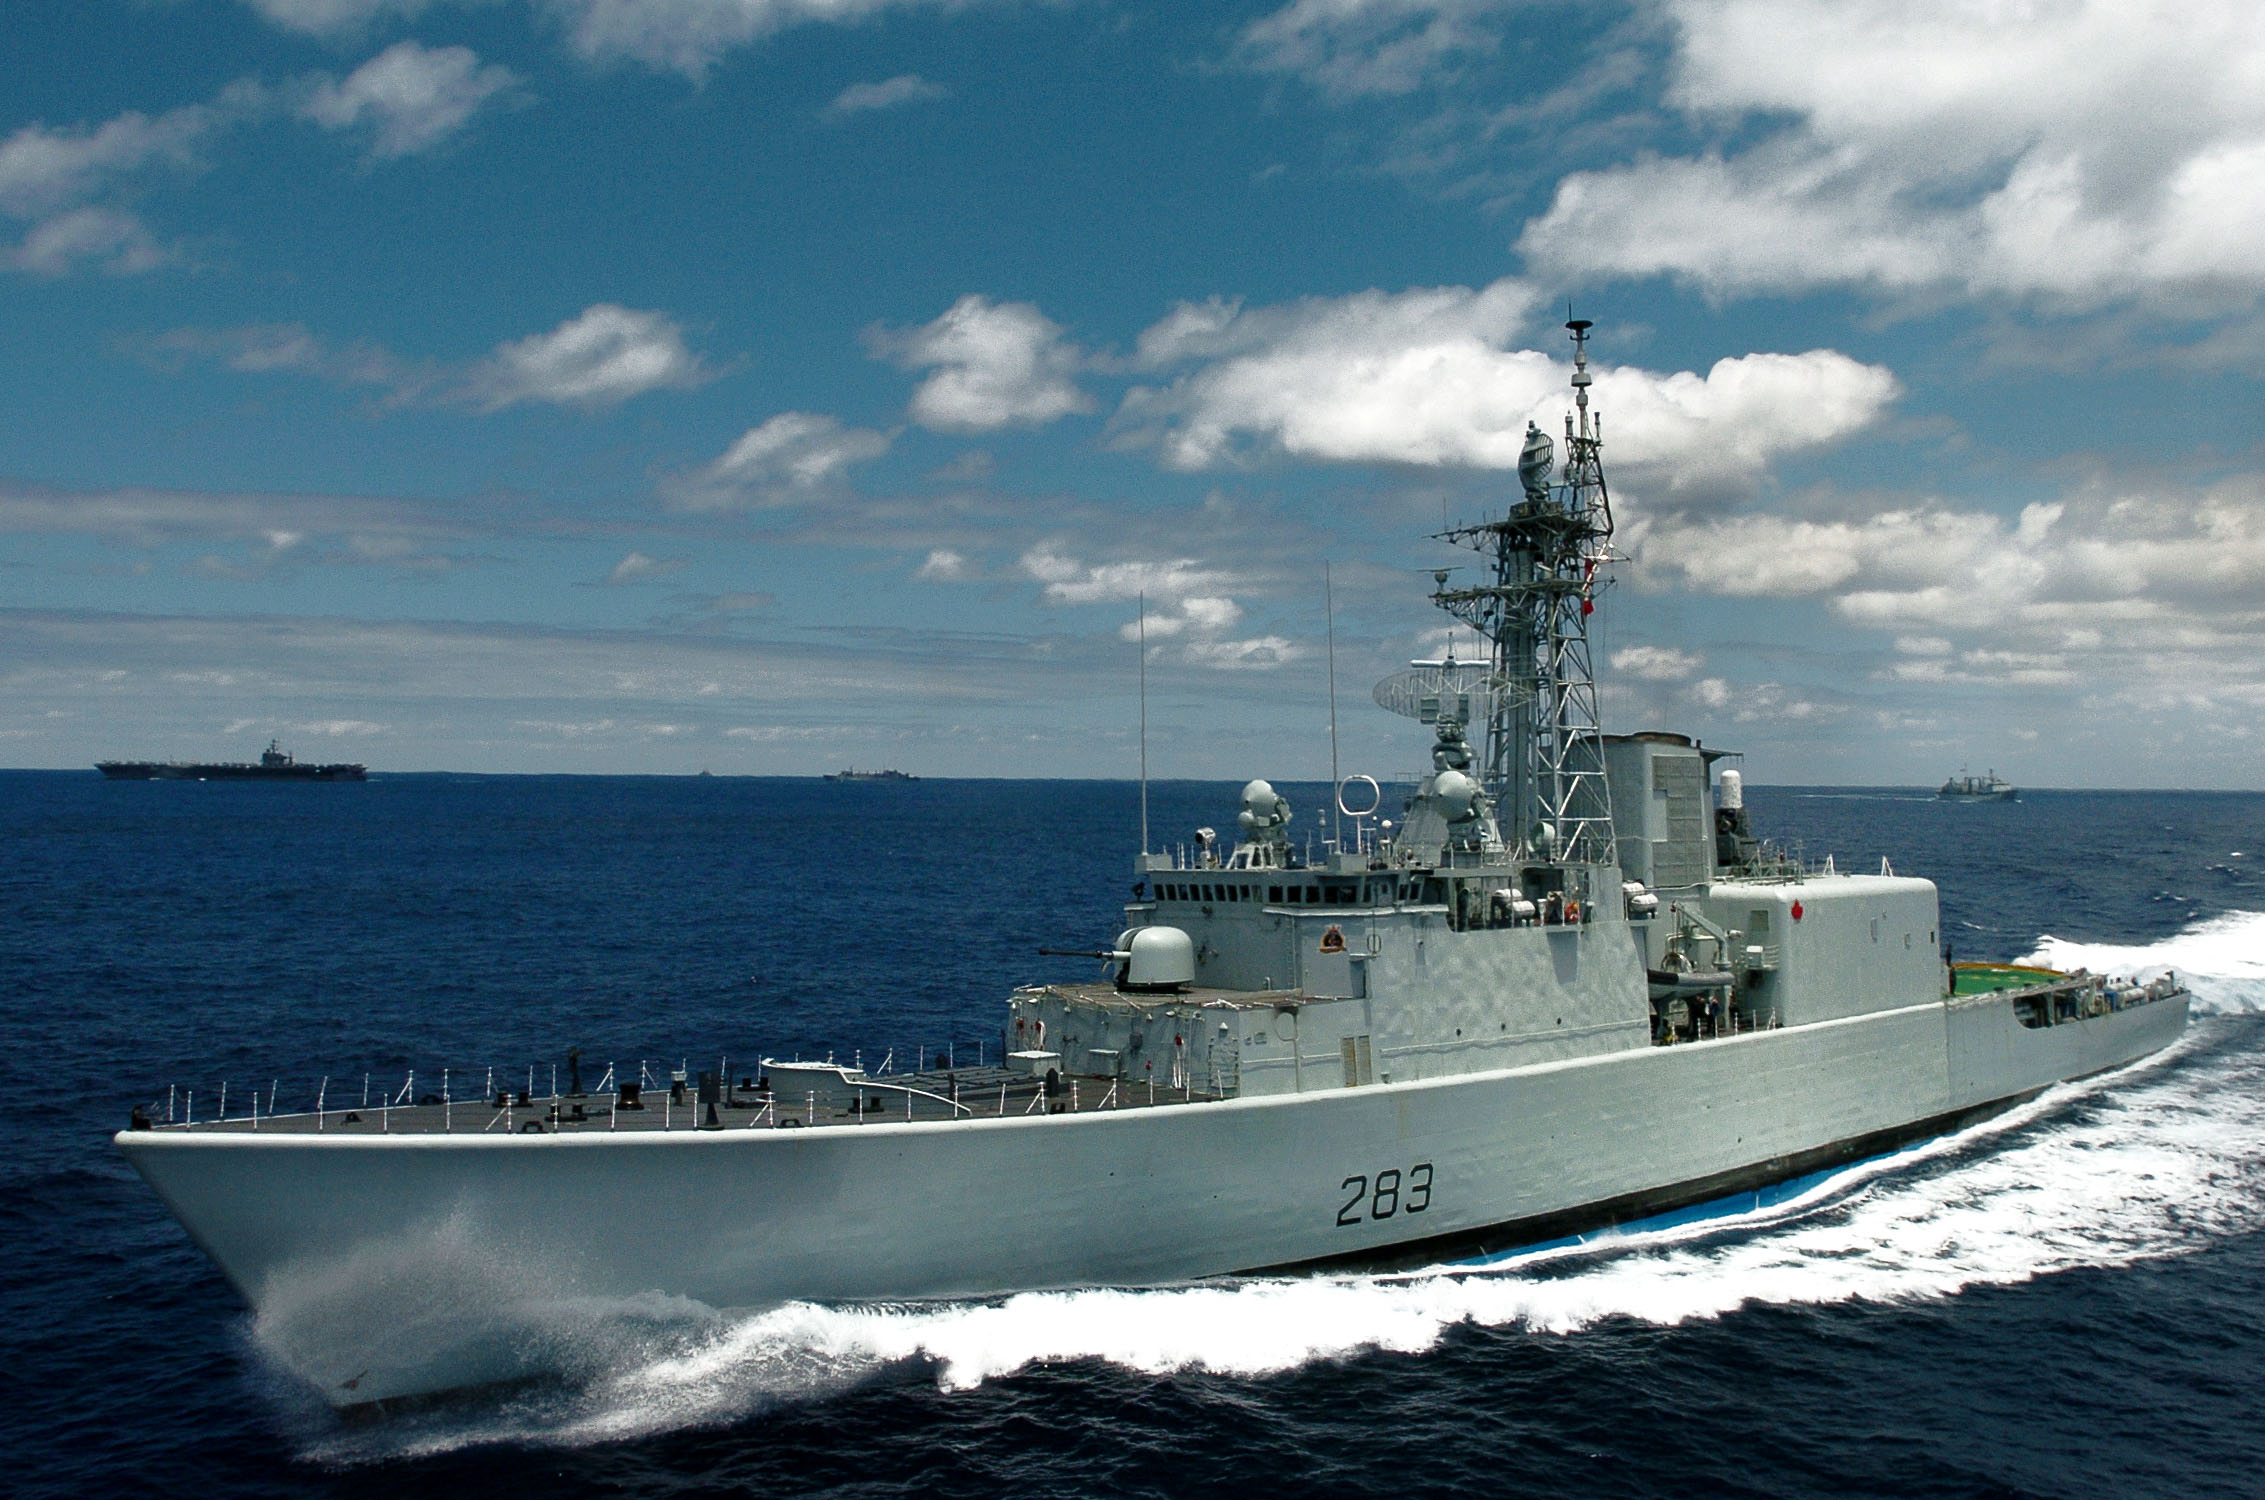 the canadian destroyer hmcs algonquin  ddg 283  underway in close formation with the nimitz